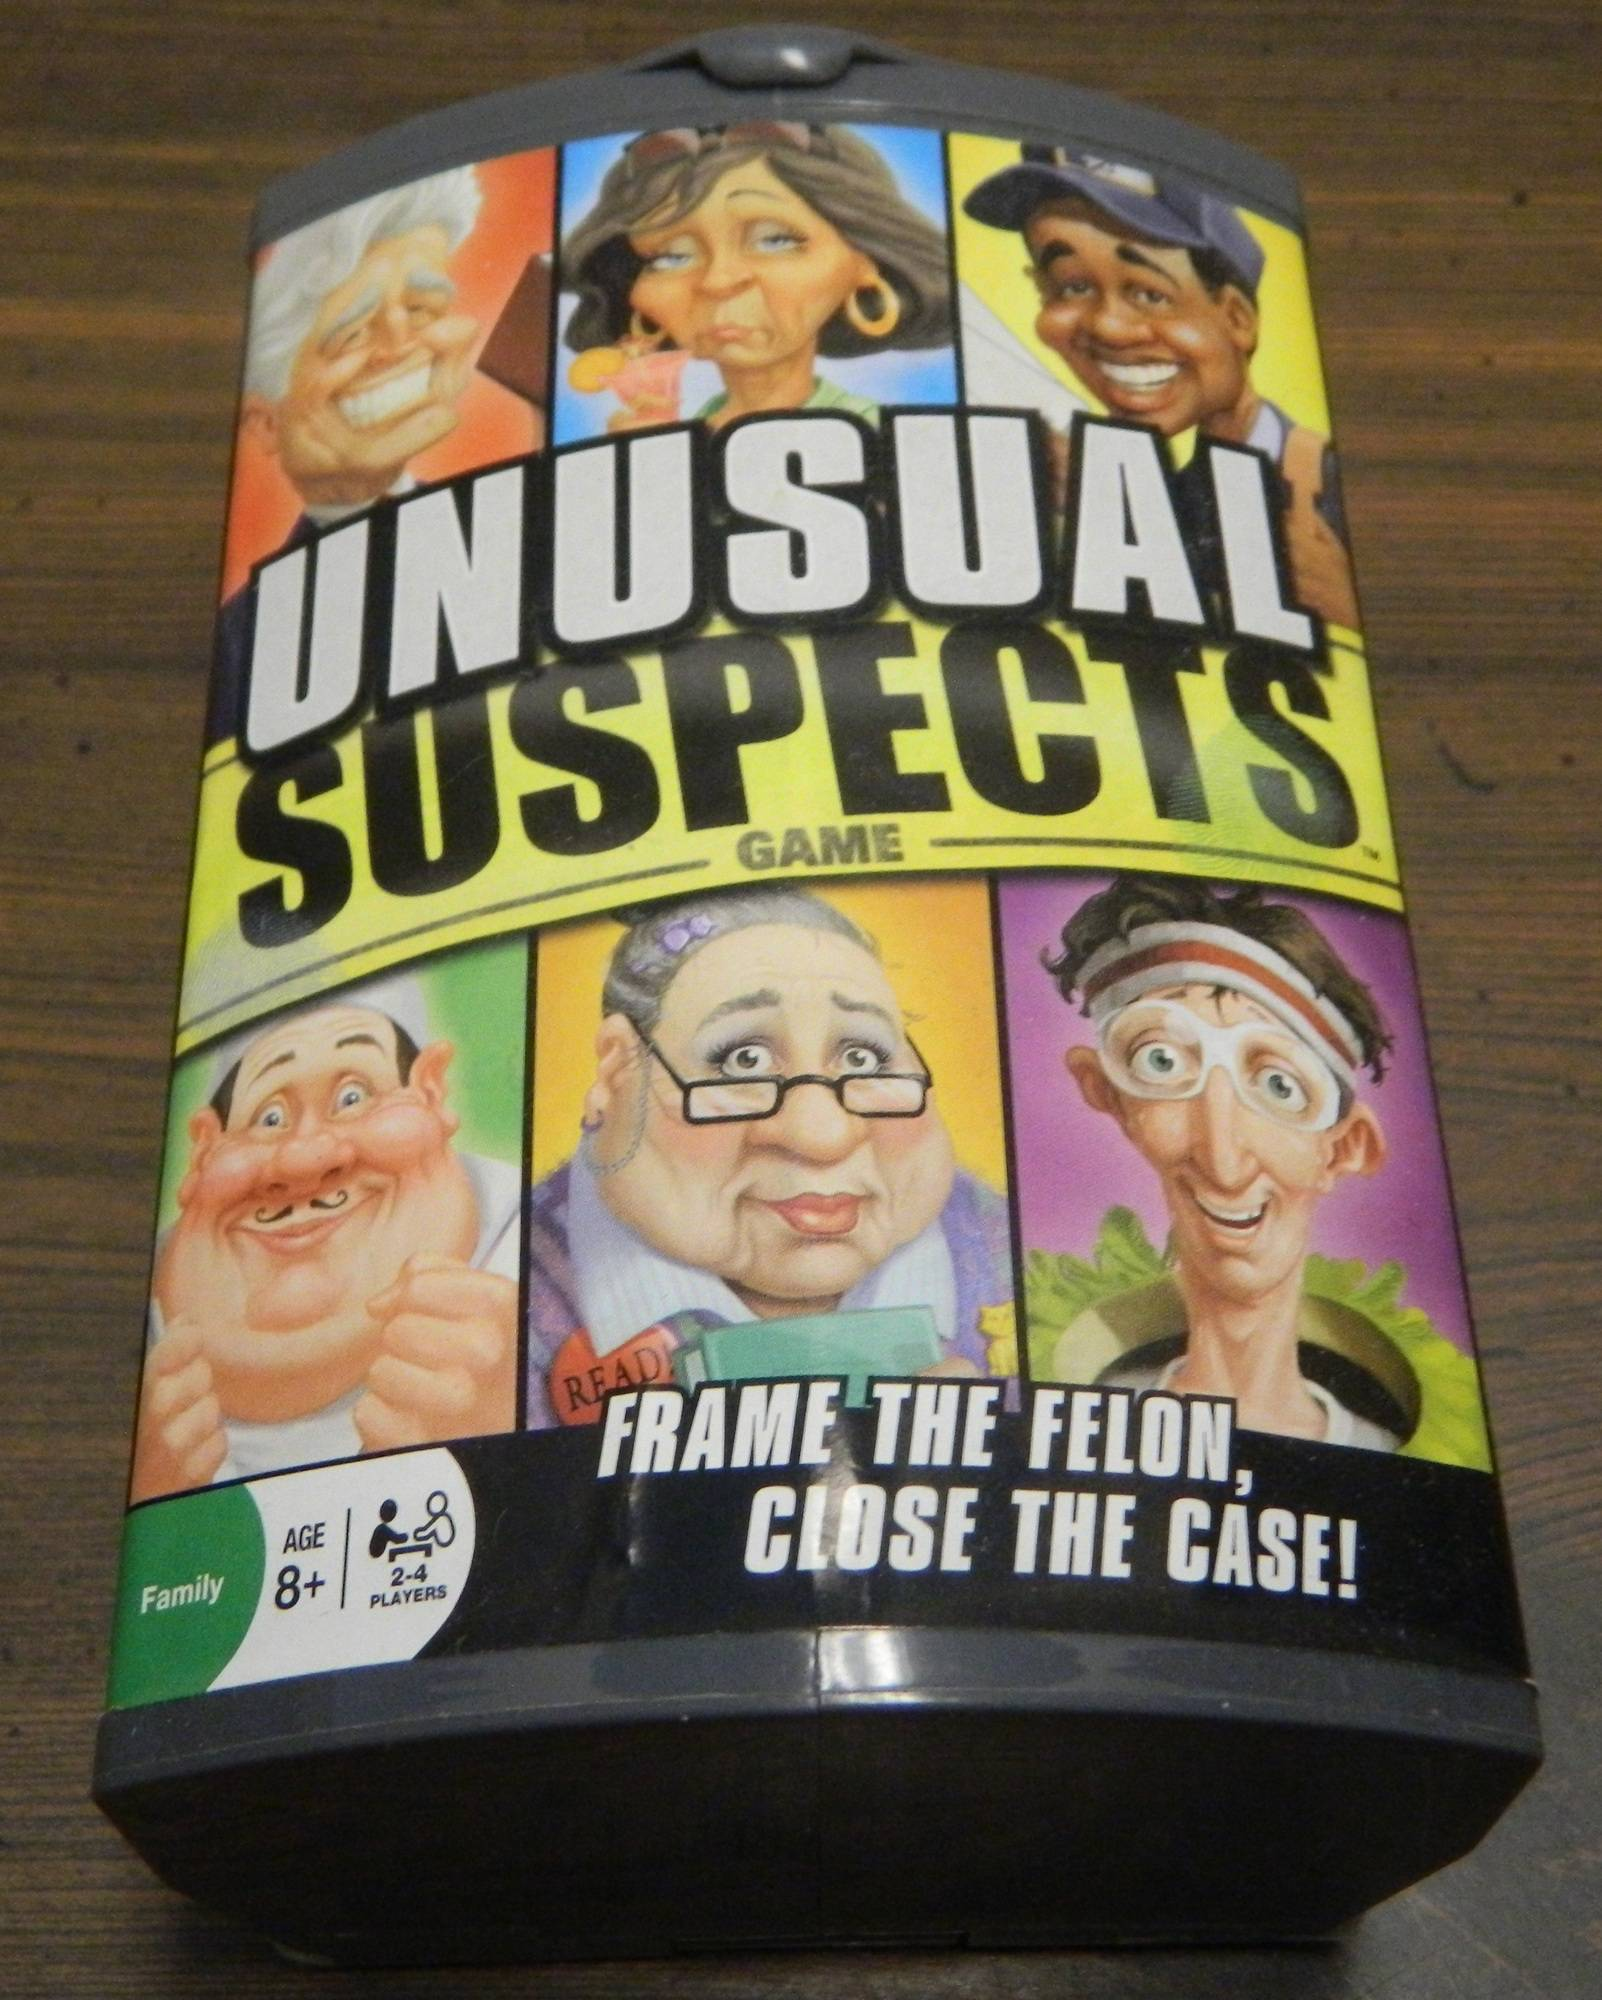 Box for Unusual Suspects